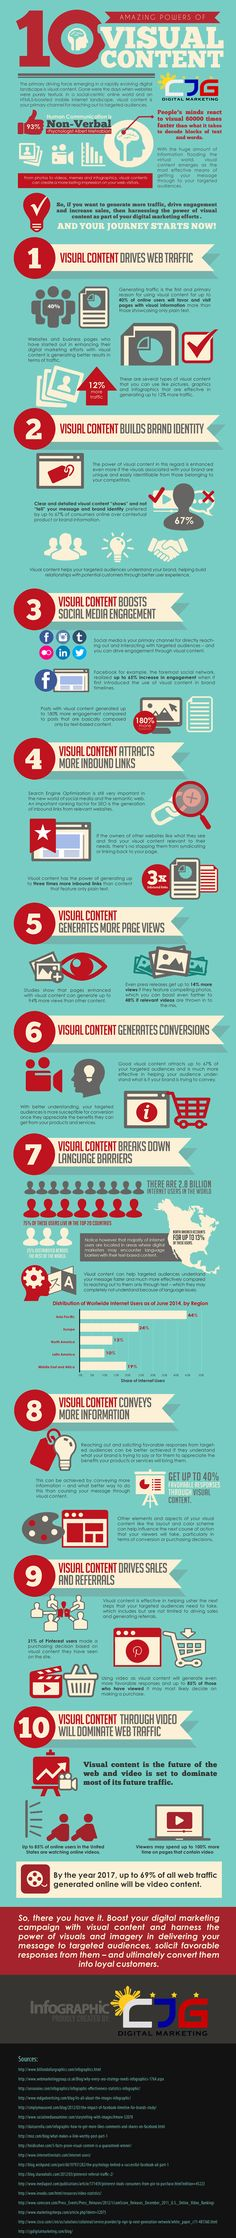 What Are 10 Reasons Why Visual Content Is The Primary Force In The Digital Landscape? #infographic